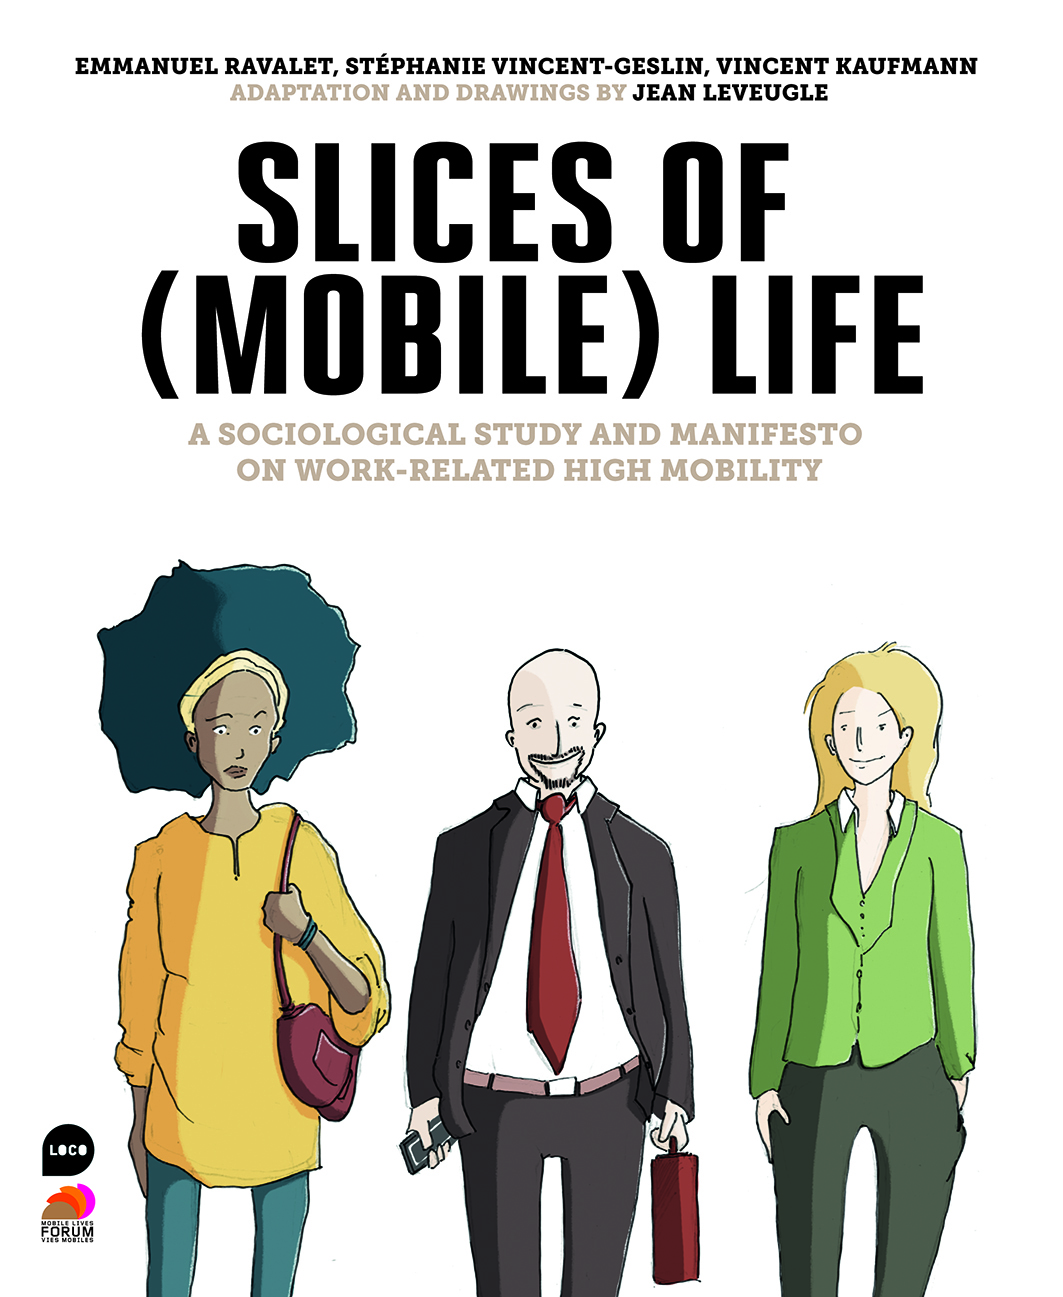 SLICES OF (MOBILE) LIFE - A SOCIOLOGICAL STUDY AND MANIFESTO ON WORK-RELATED HIGH MOBILITY